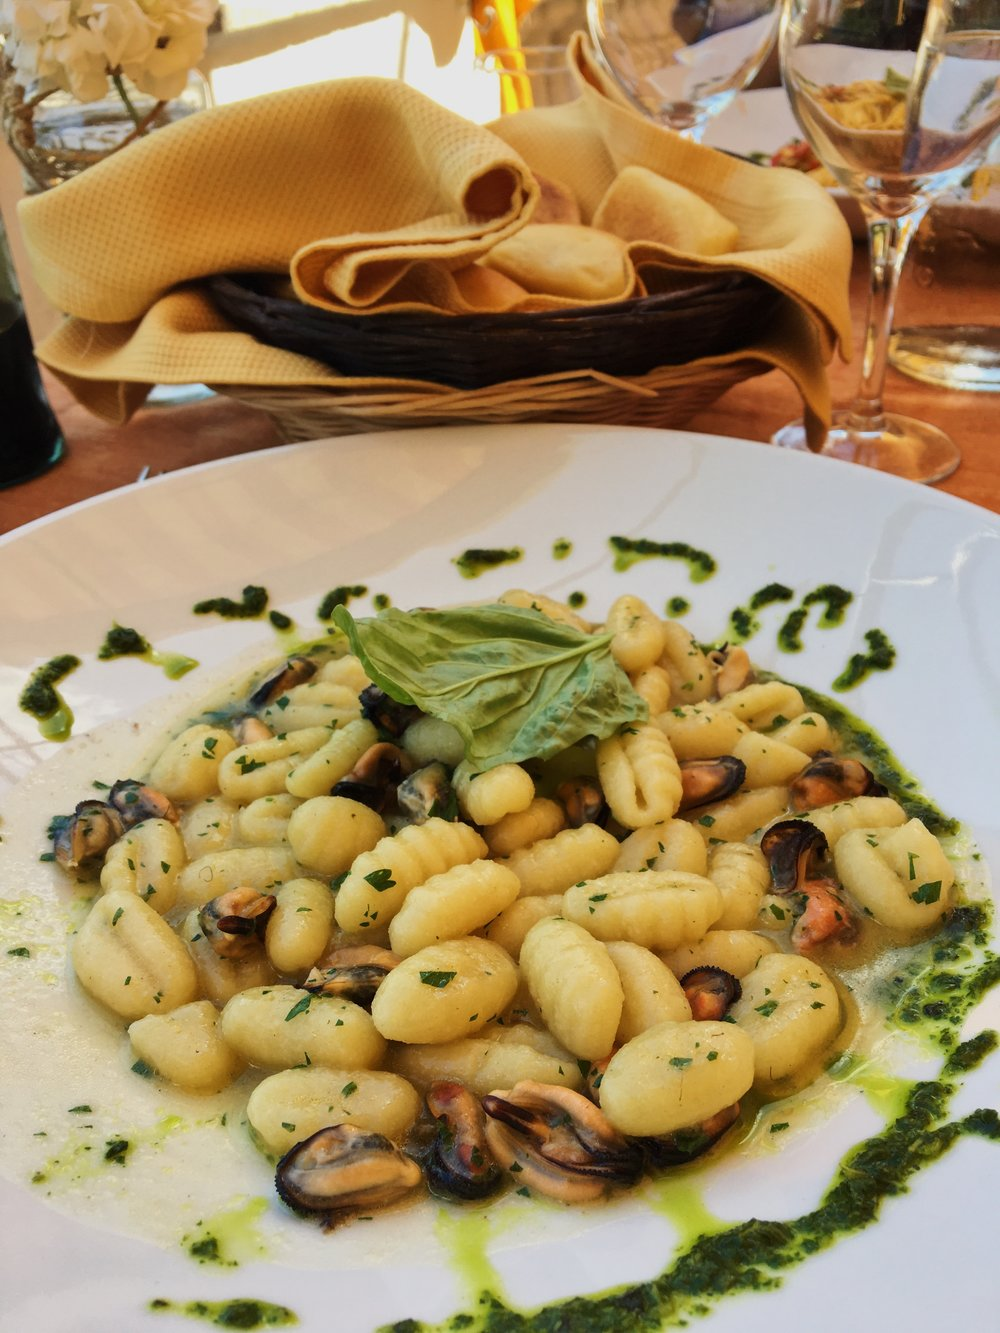 hotel scapolatiello has a great in house selection of food, made with local produce